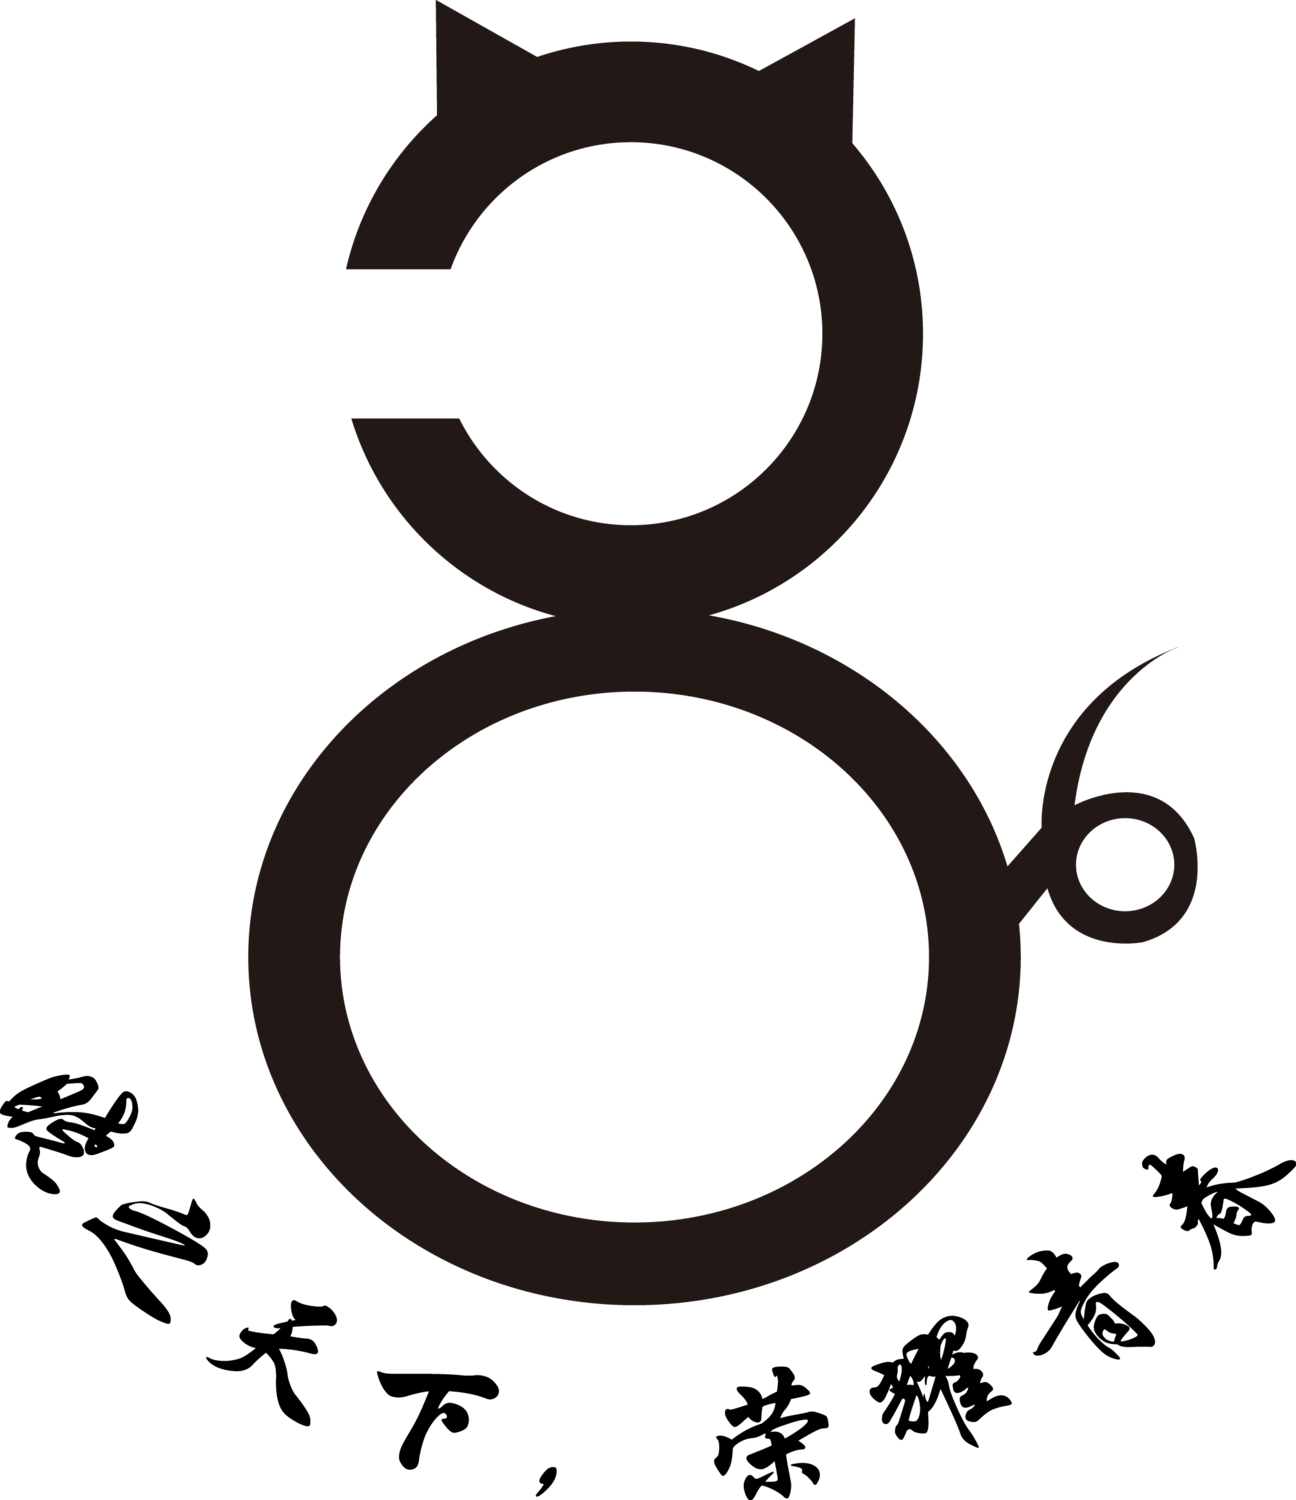 6.png